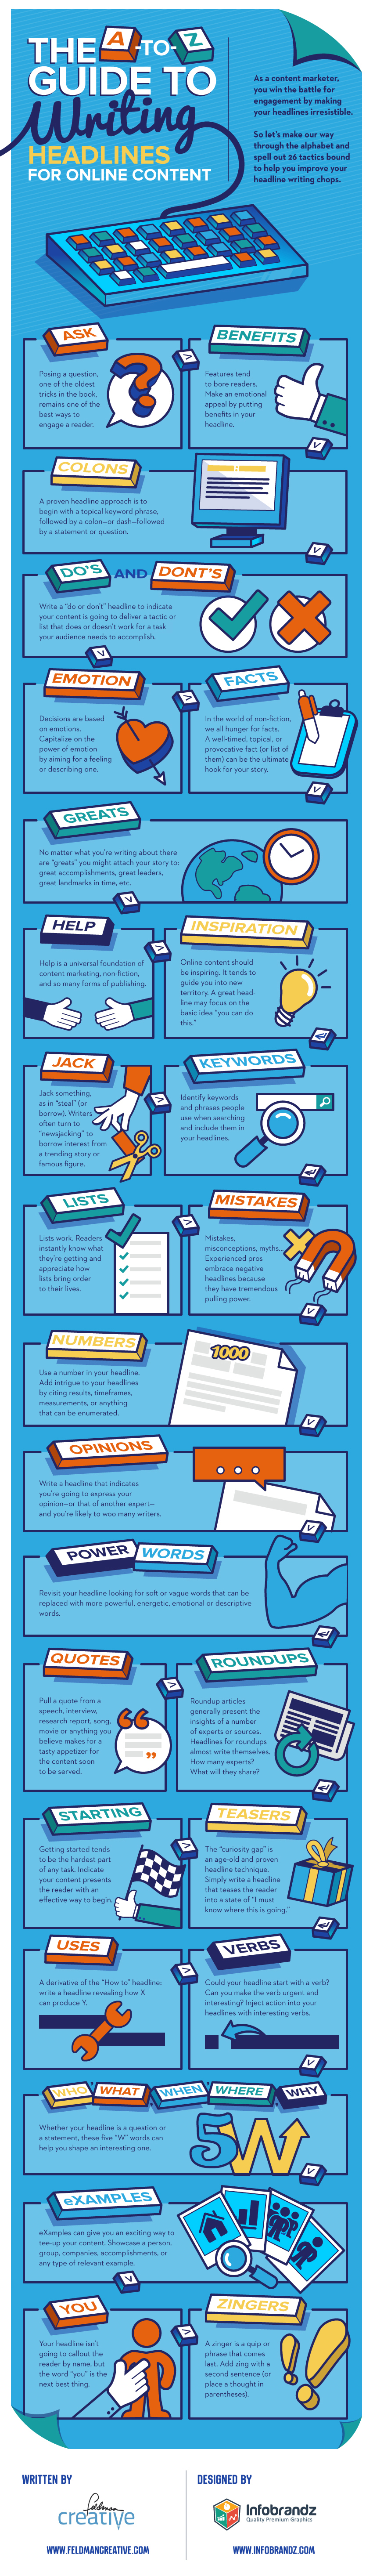 Infographic provides tips on how to write better blog titles